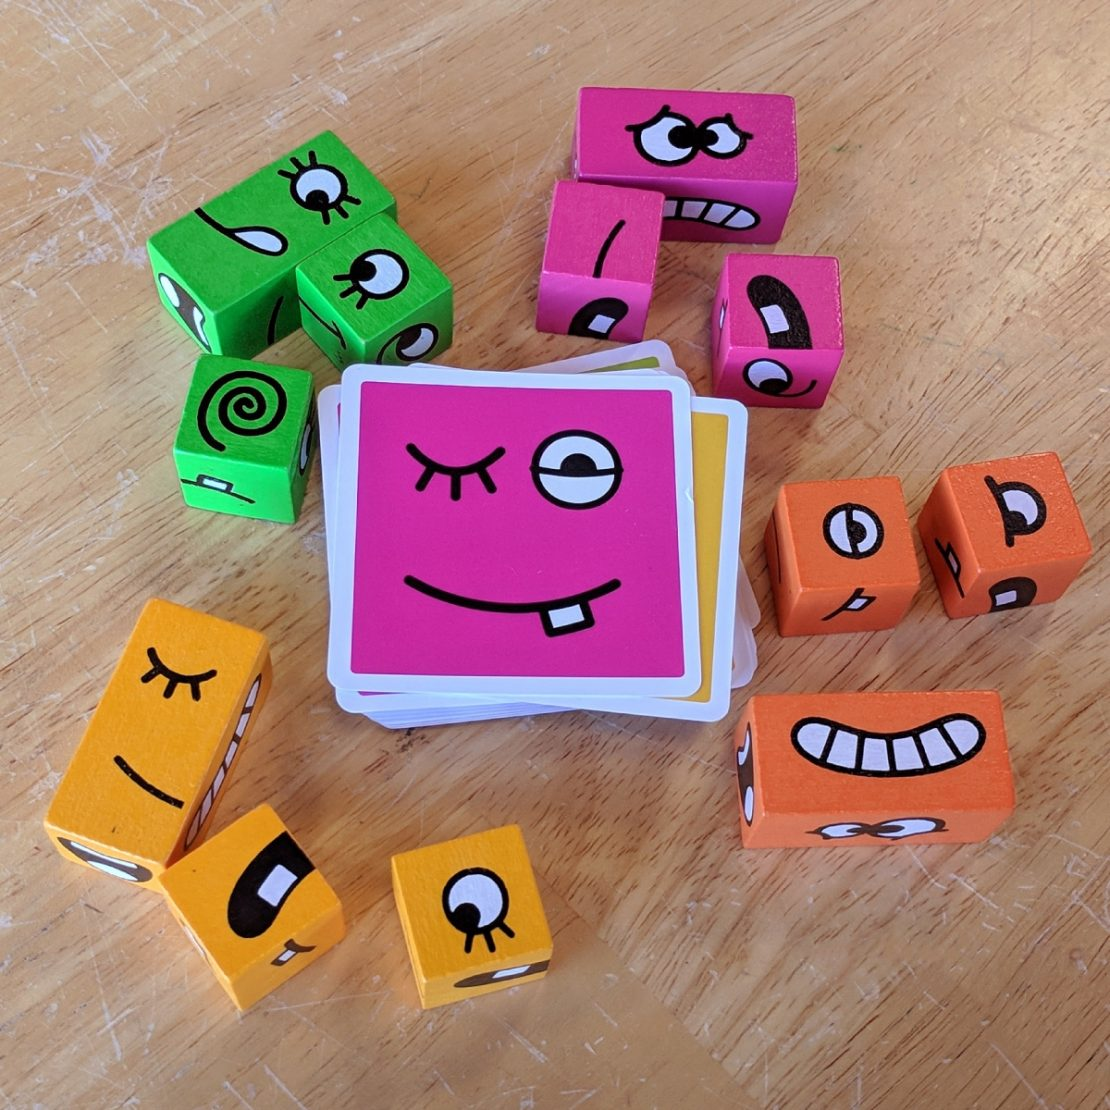 Cubeez game from Blue Orange Games